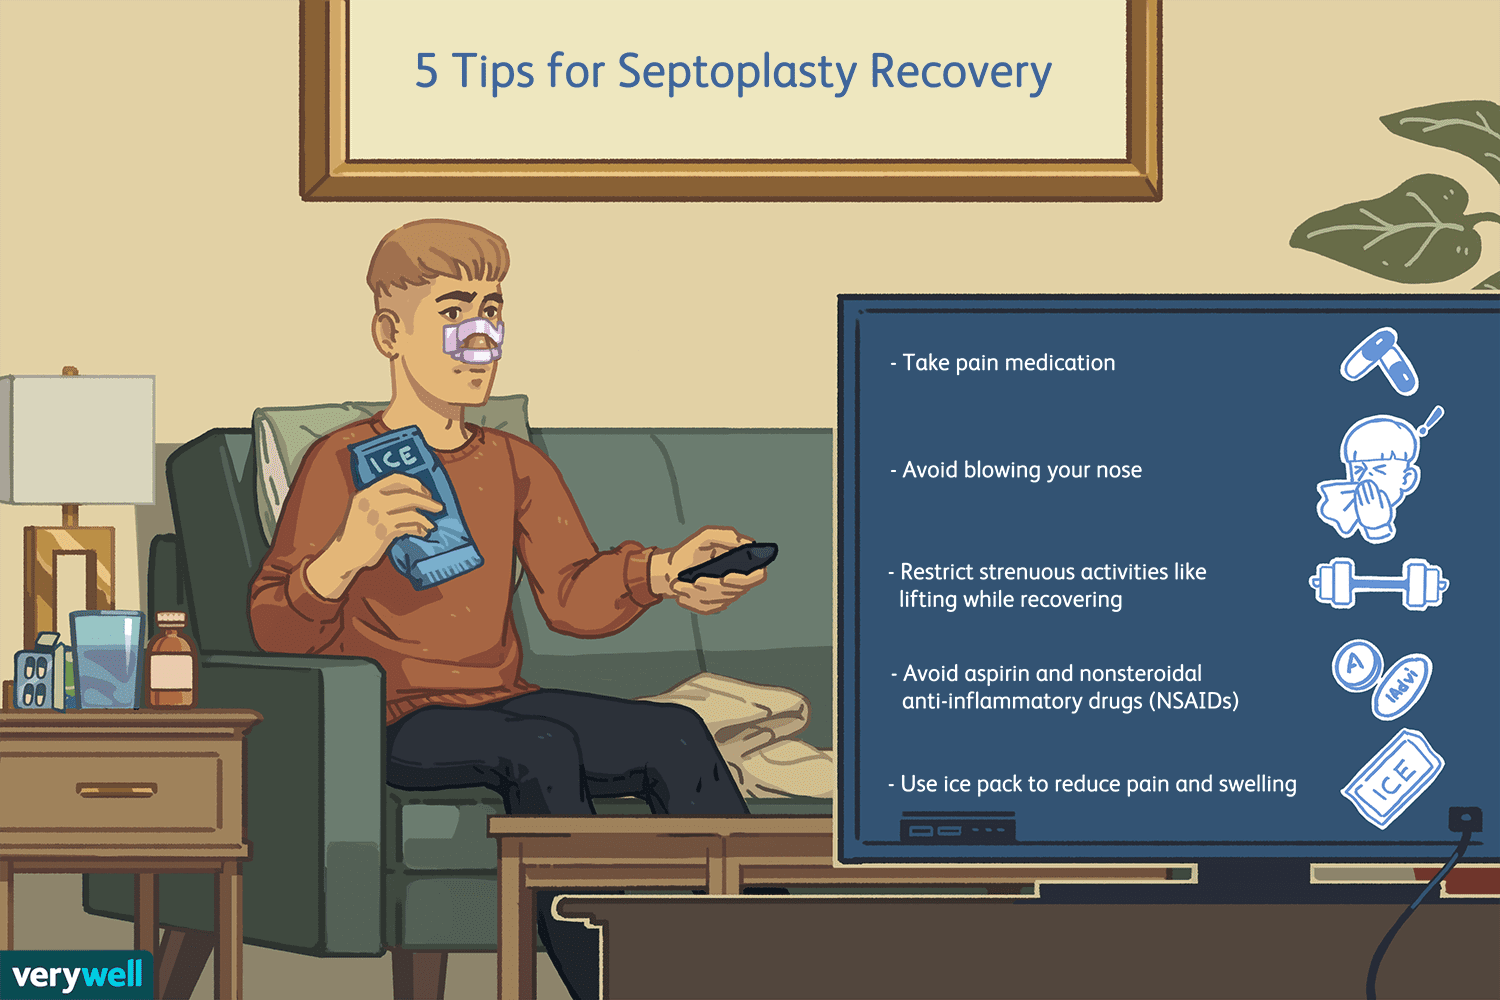 Tips for Septoplasty Recovery